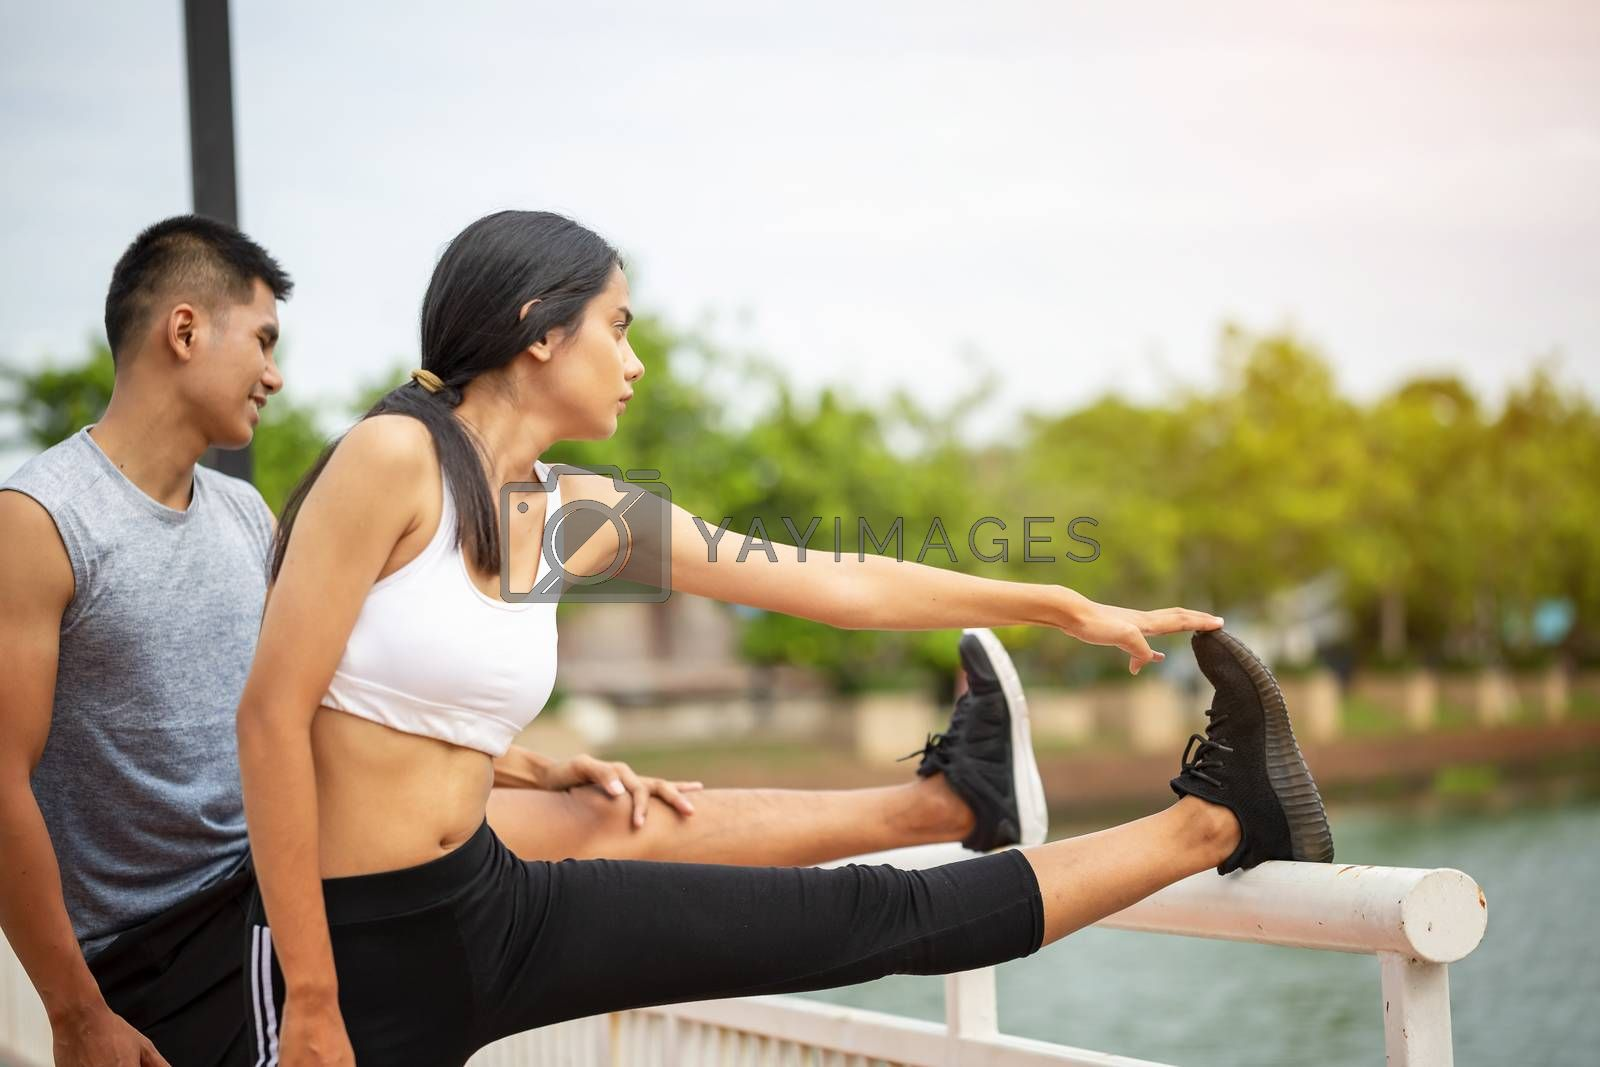 Couples who take care of their health by exercising happily in the city. Health care concept